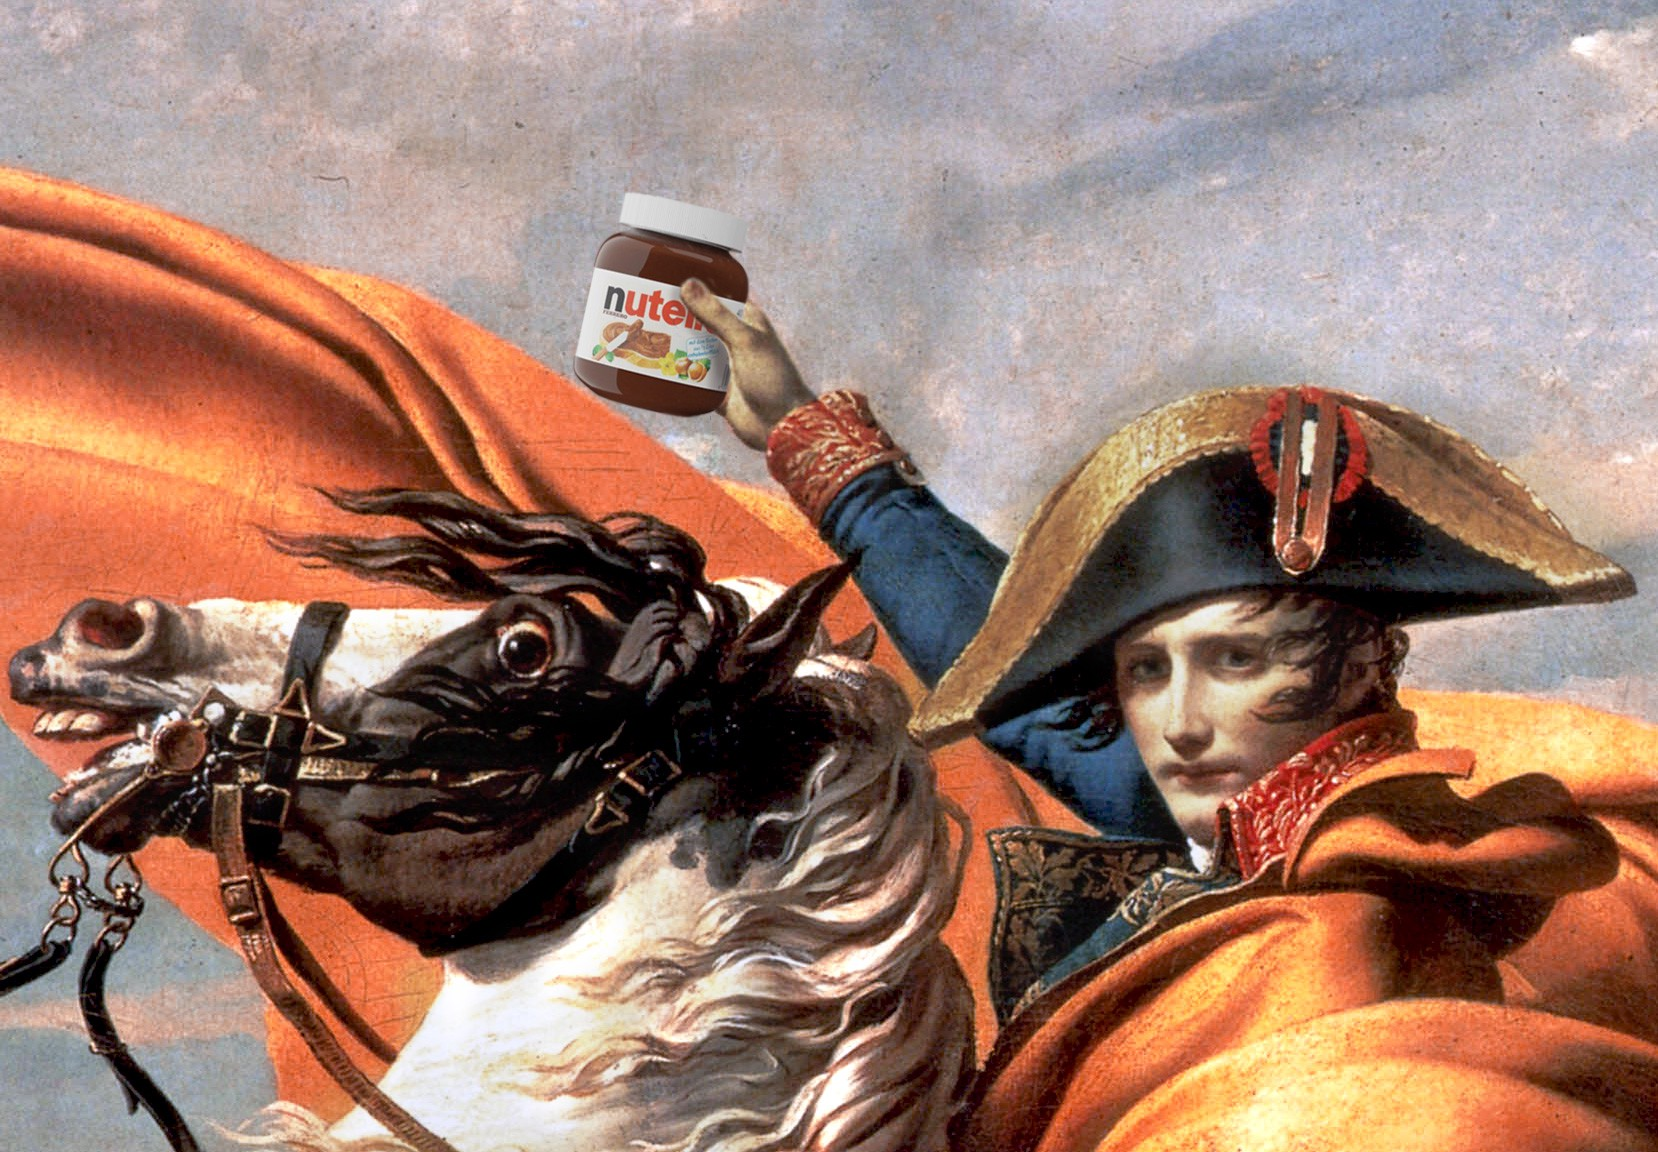 Napoleon Bonaparte on his horse holding a jar of Nutella